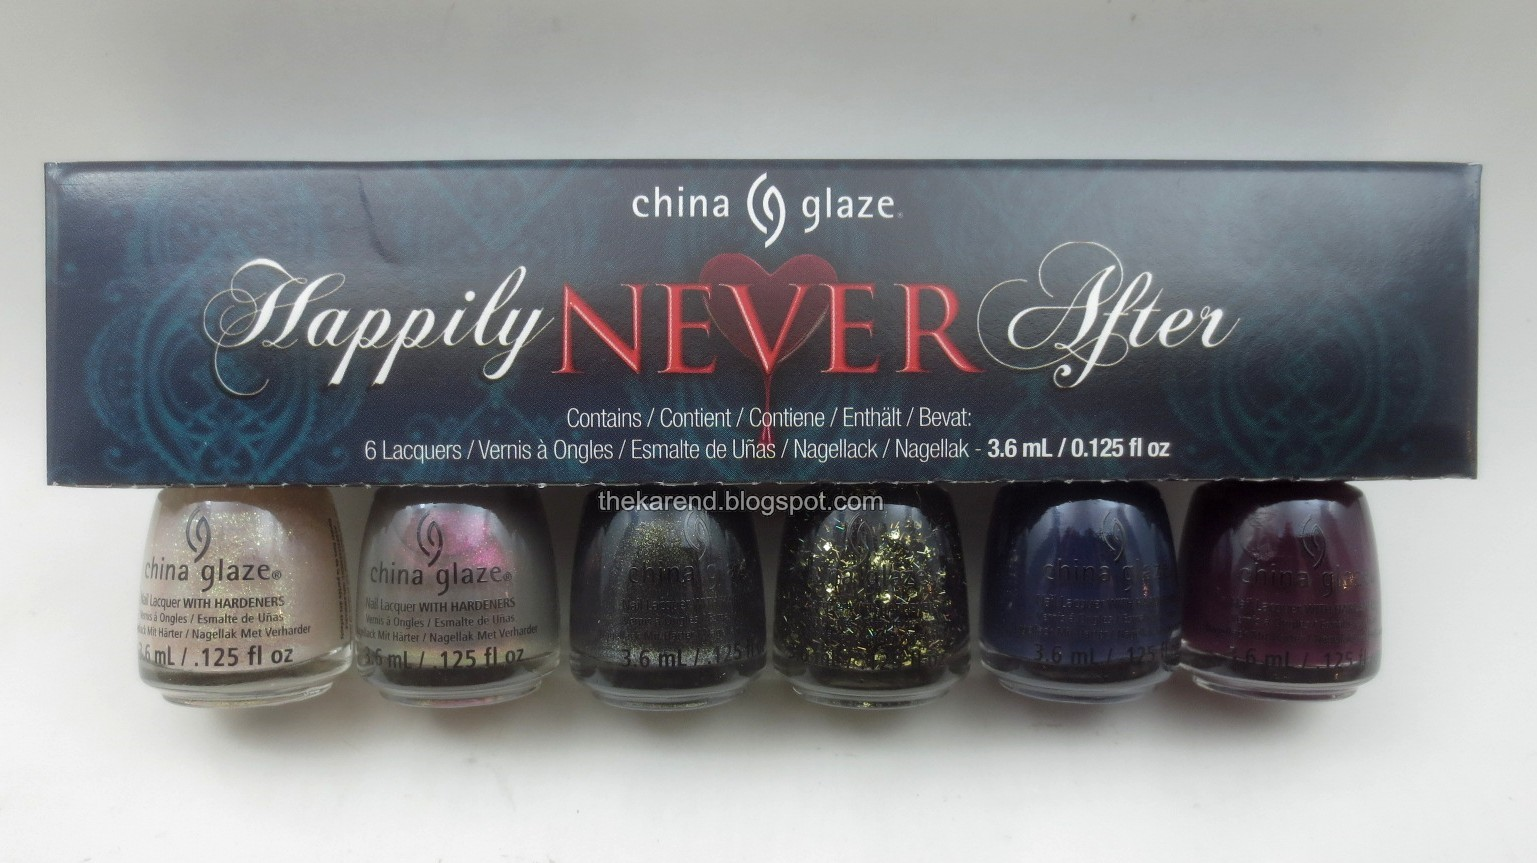 Frazzle and Aniploish: China Glaze Happily Never After